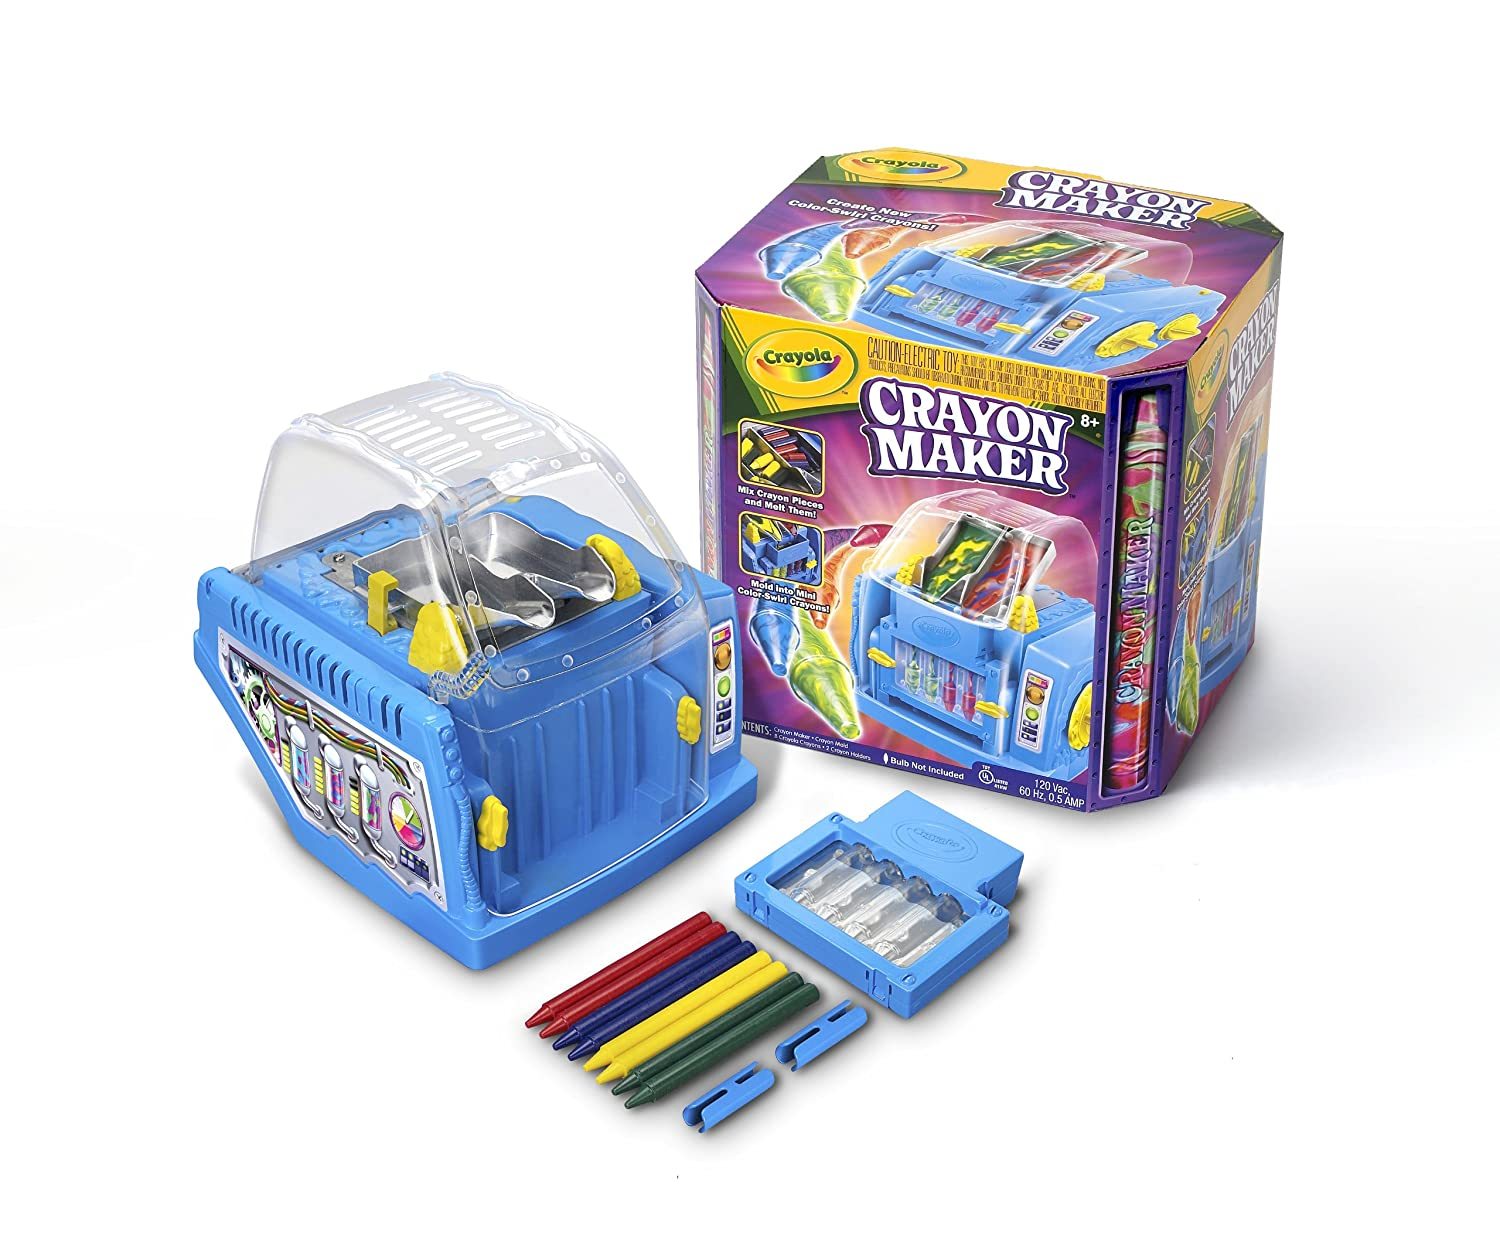 Best Crayola Toys For Kids : Crayola crayon melting machine for kids best gifts top toys